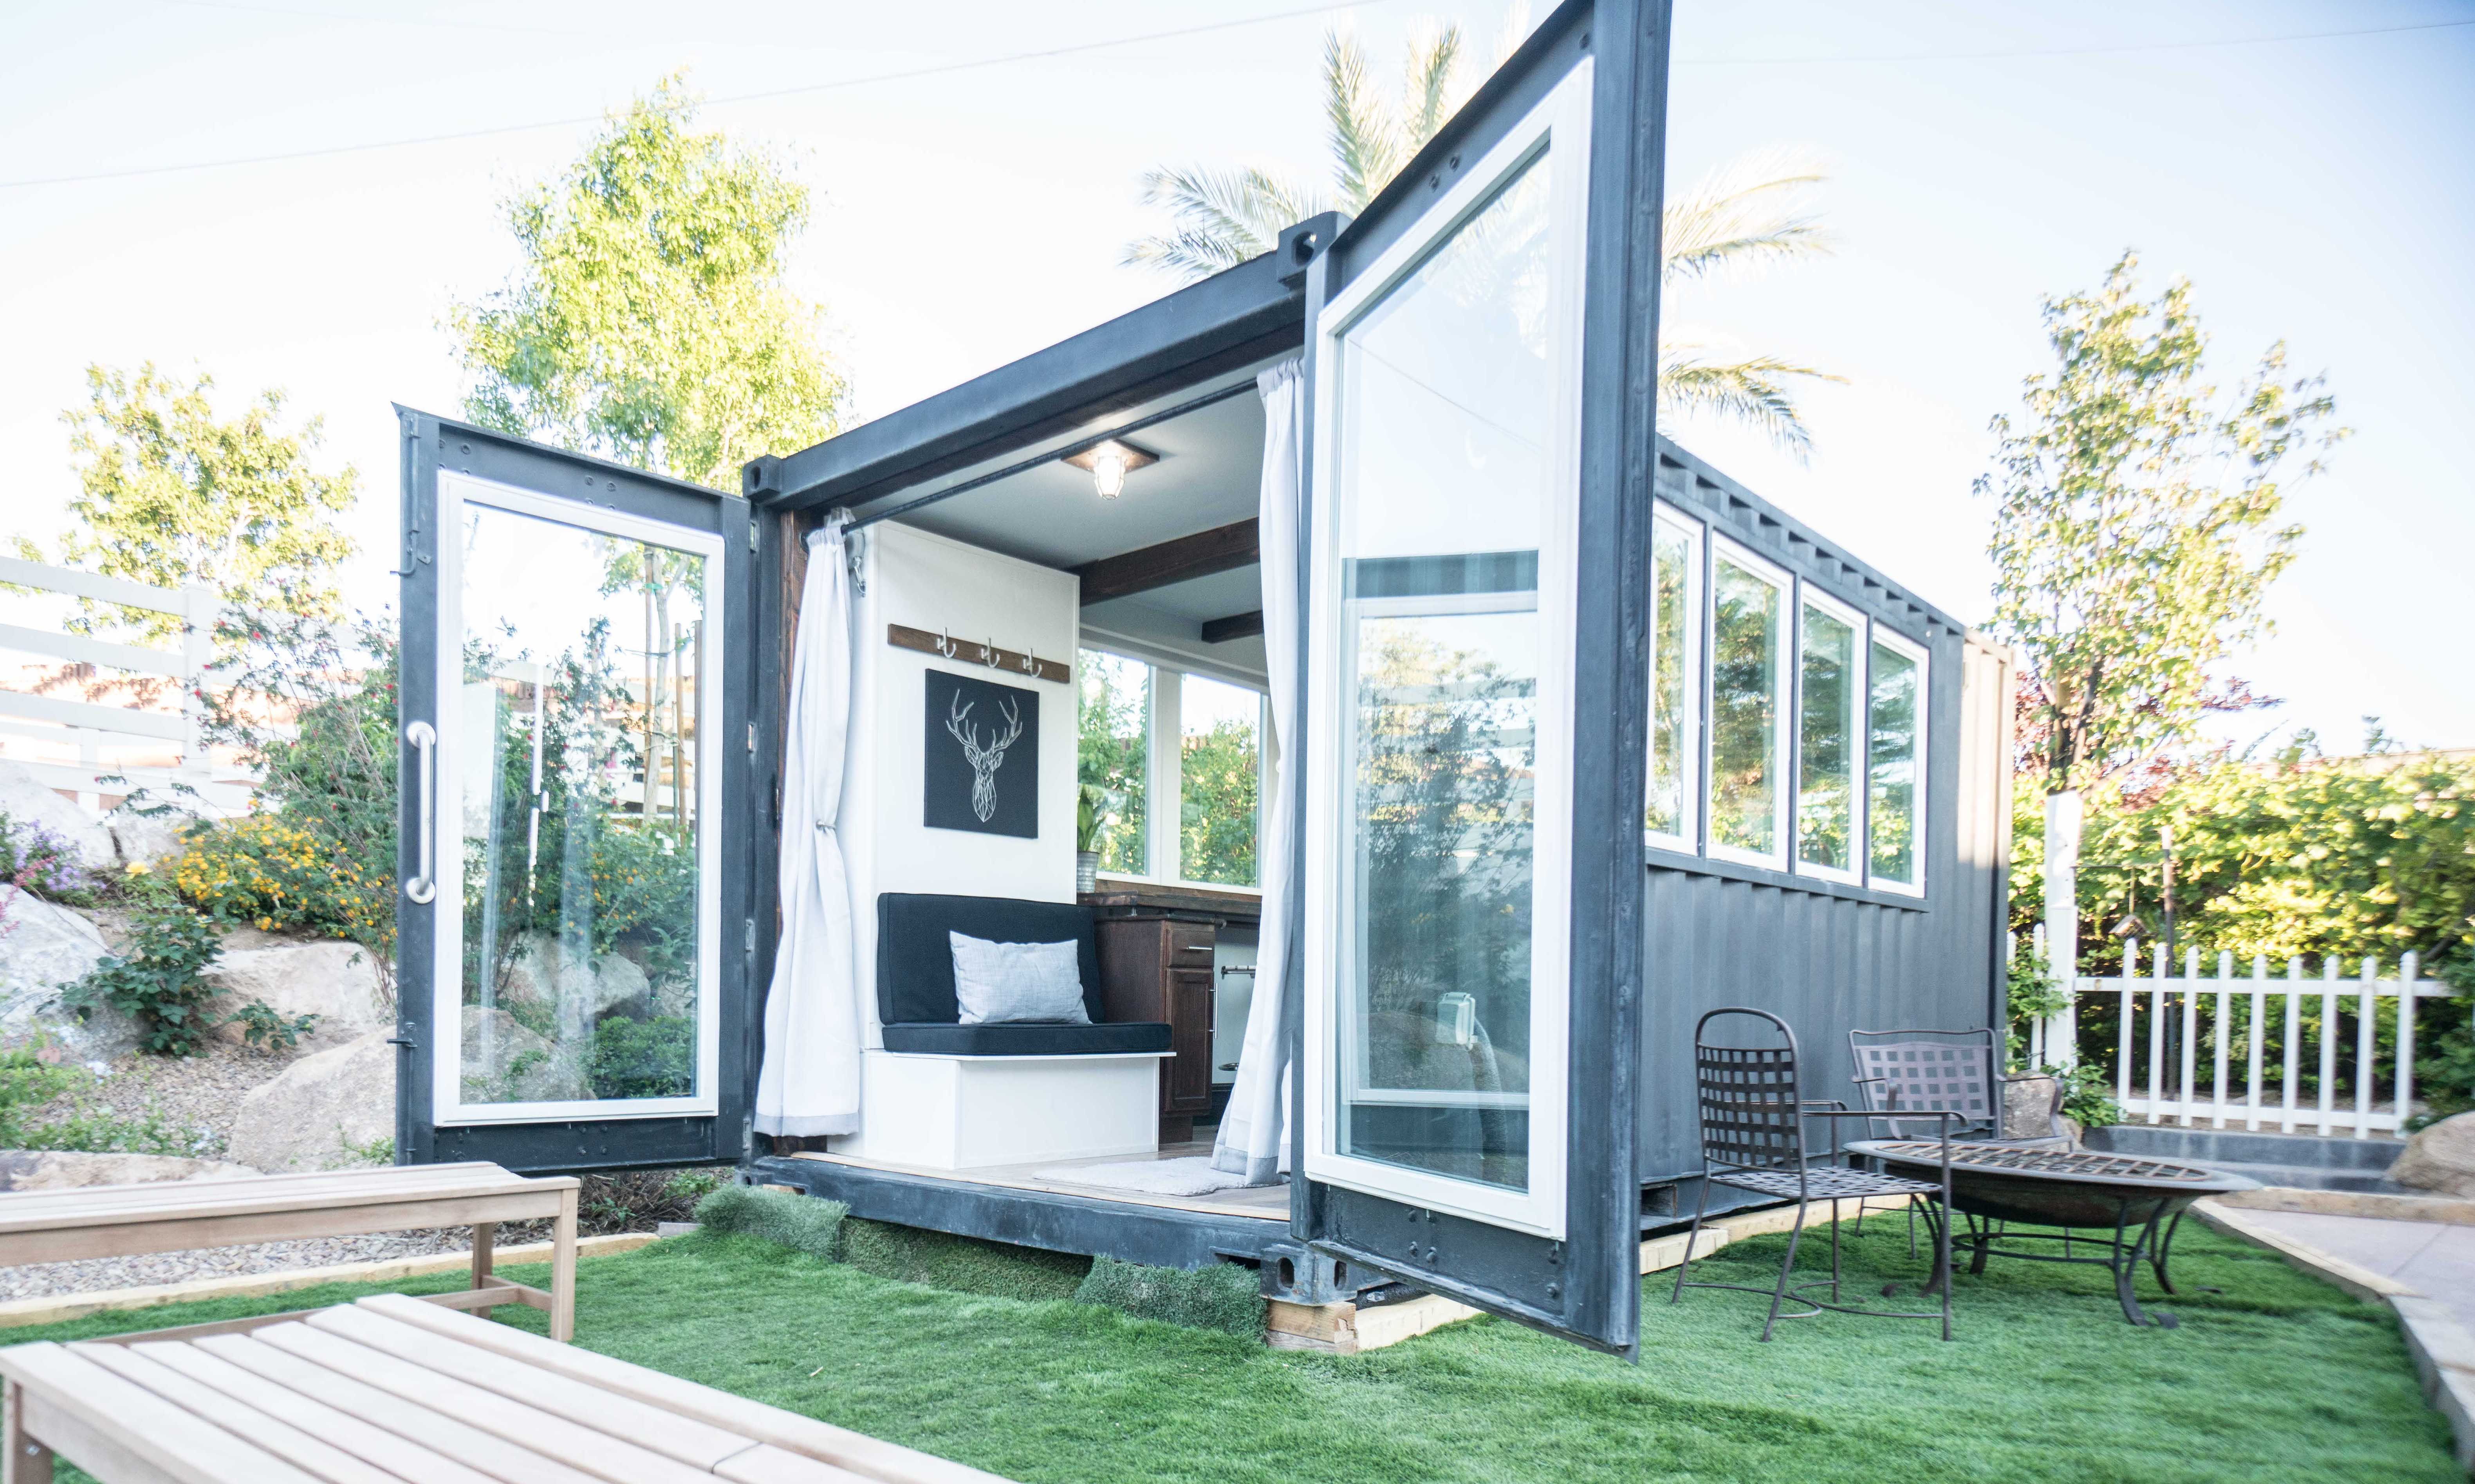 Light filled shipping container house cost just 36K